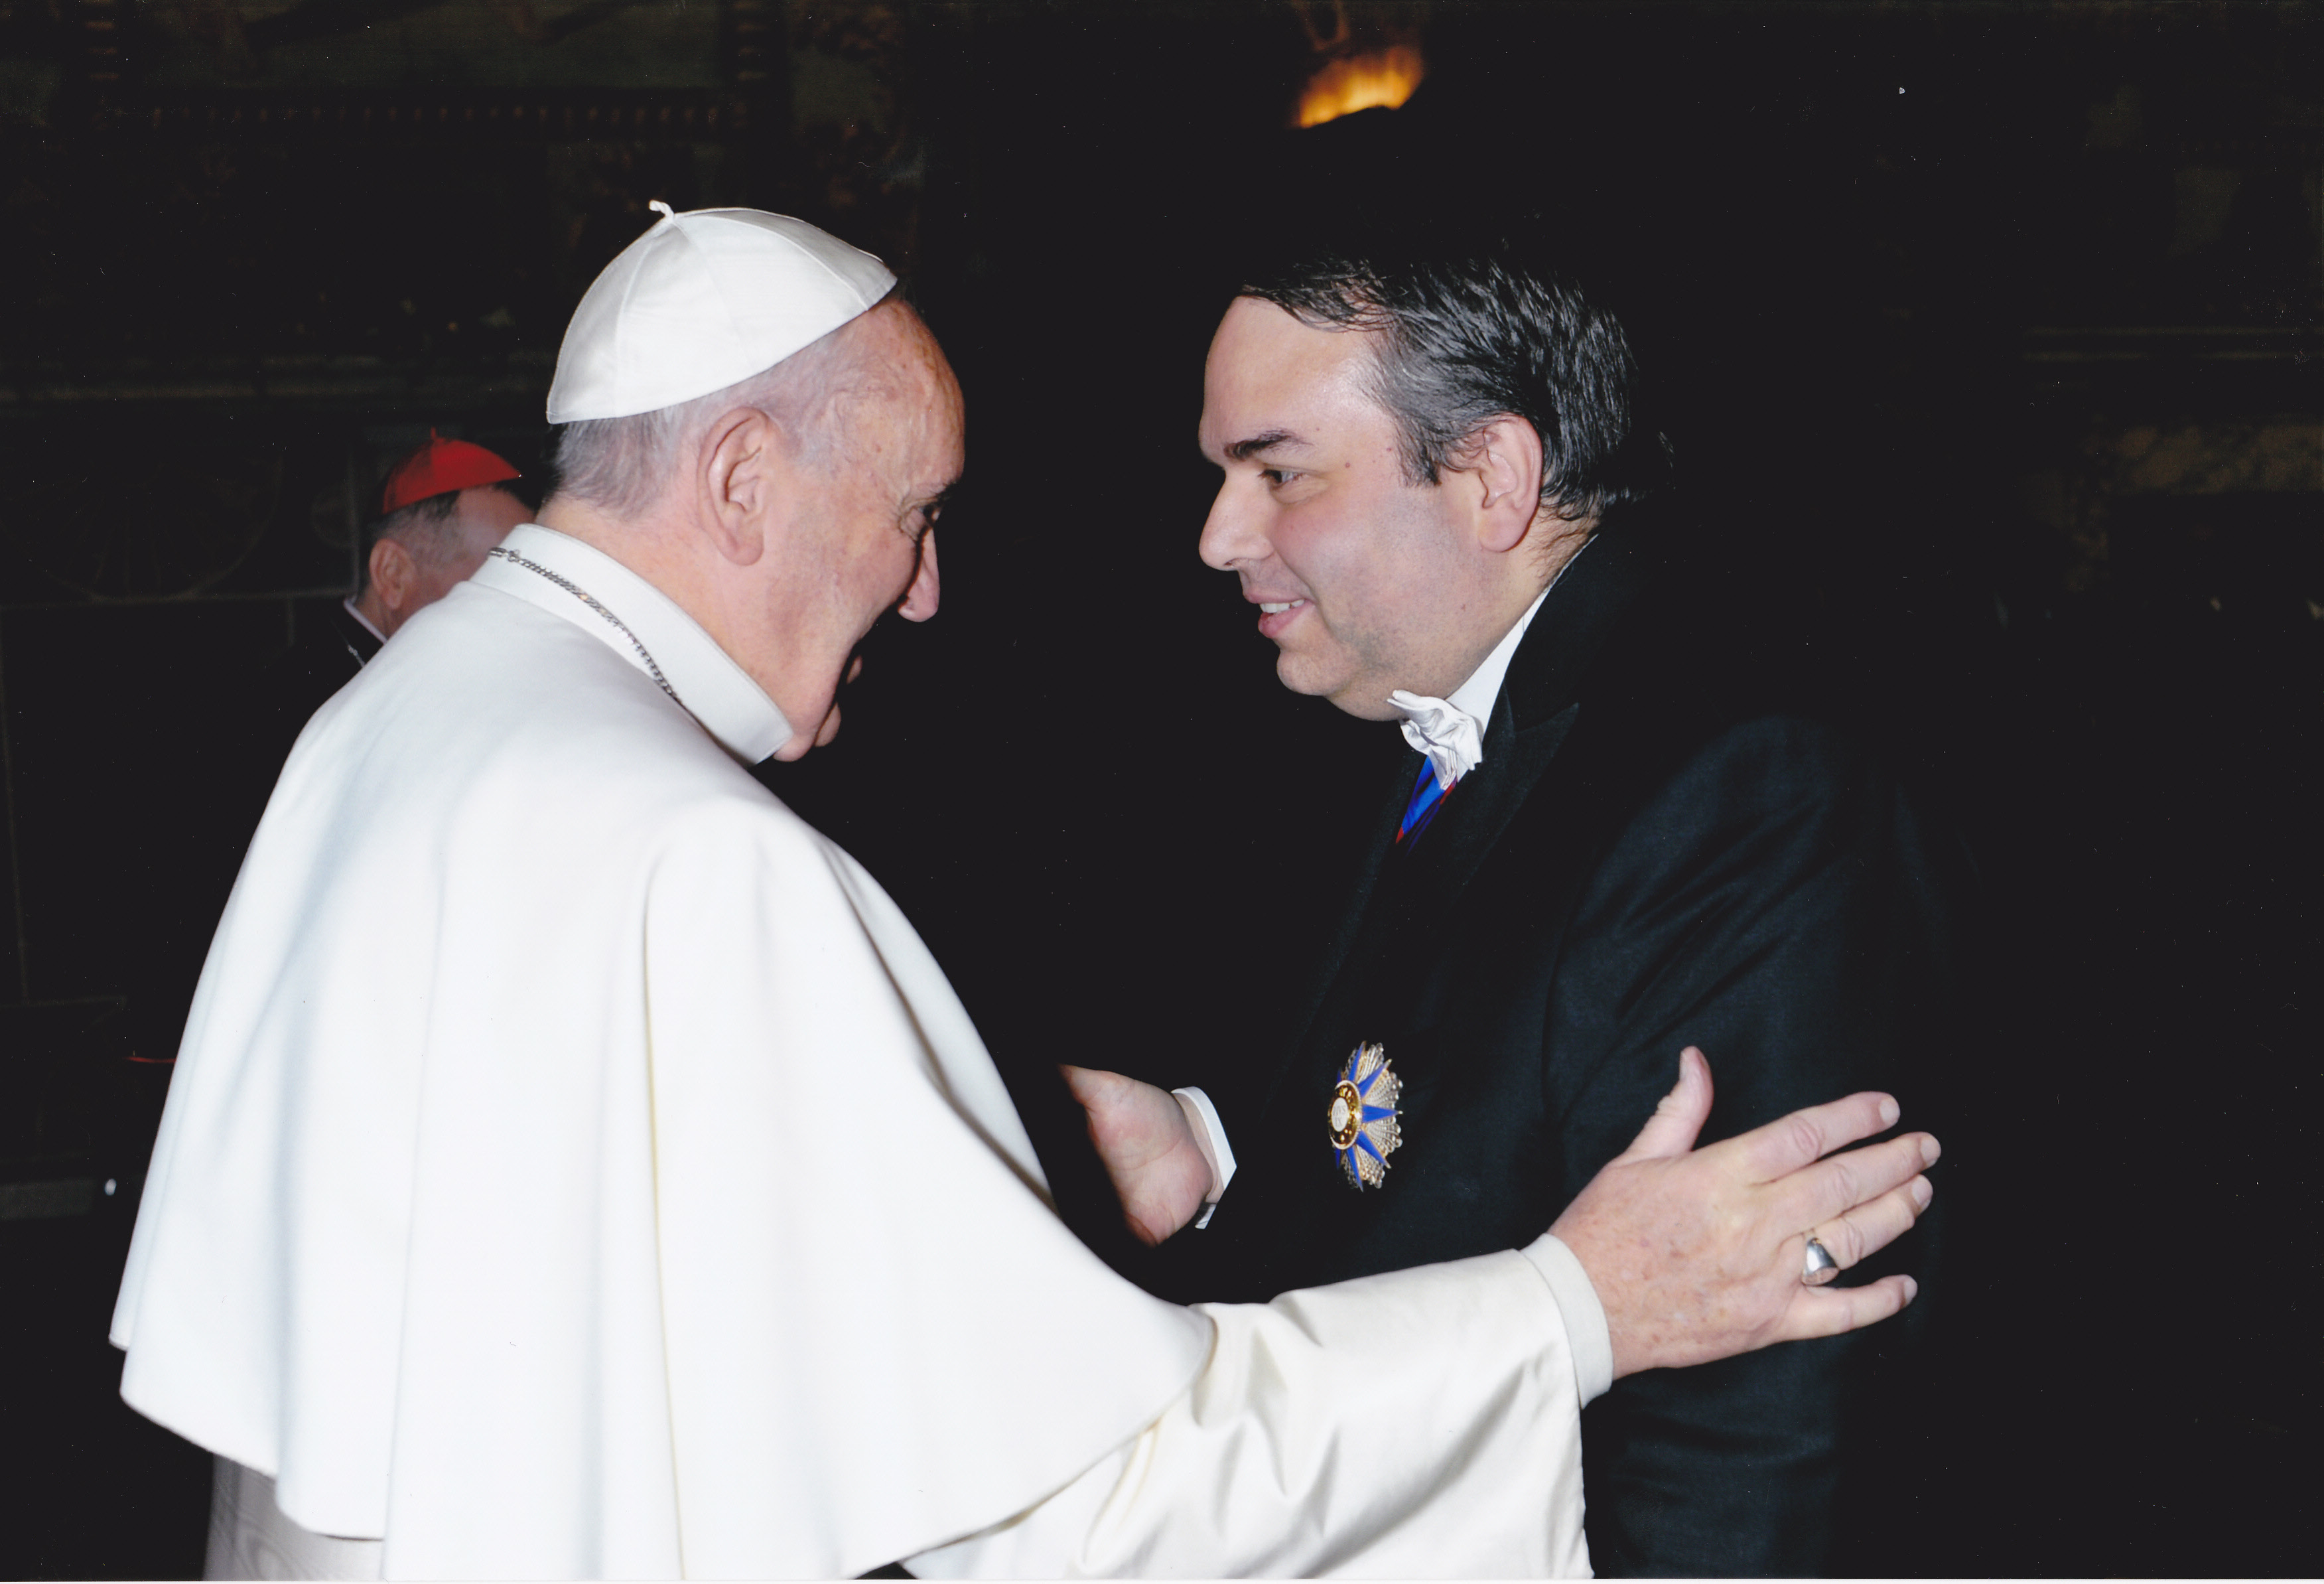 Ambassador of Paraguay at the Saint Siege Esteban Kriskovich with a pope Francis